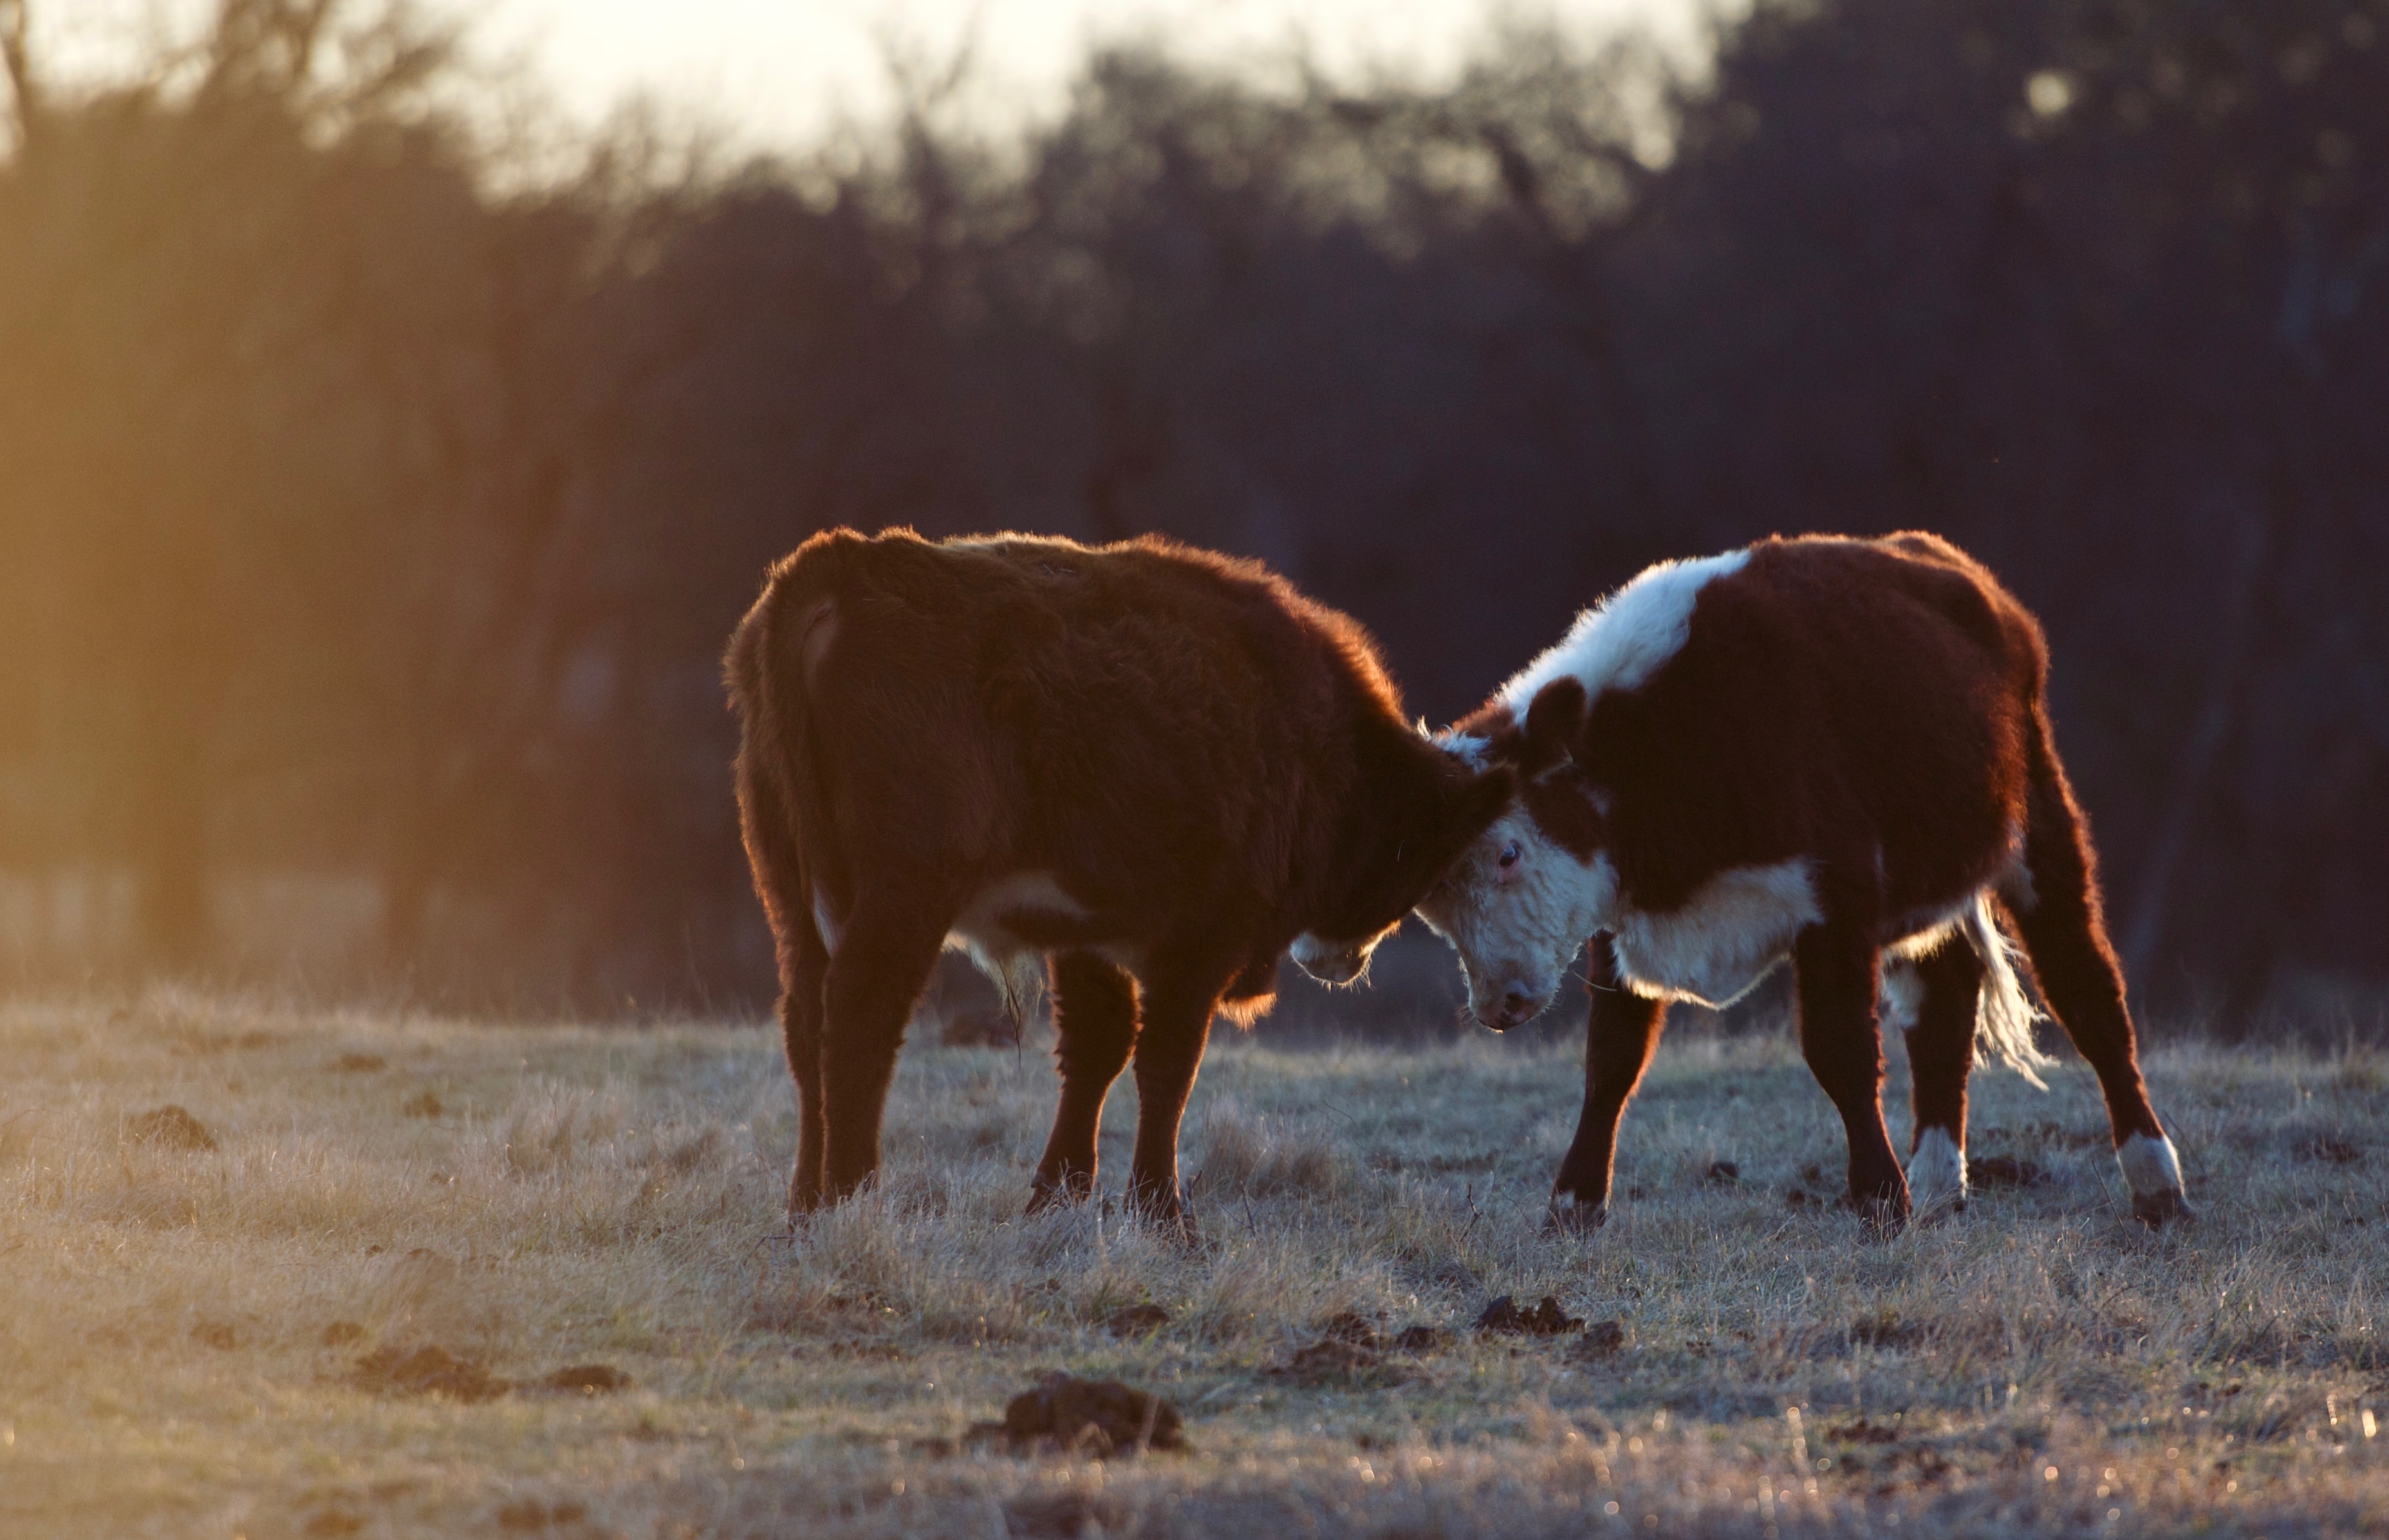 Hereford Cattle Pictures Download Free Images On Unsplash